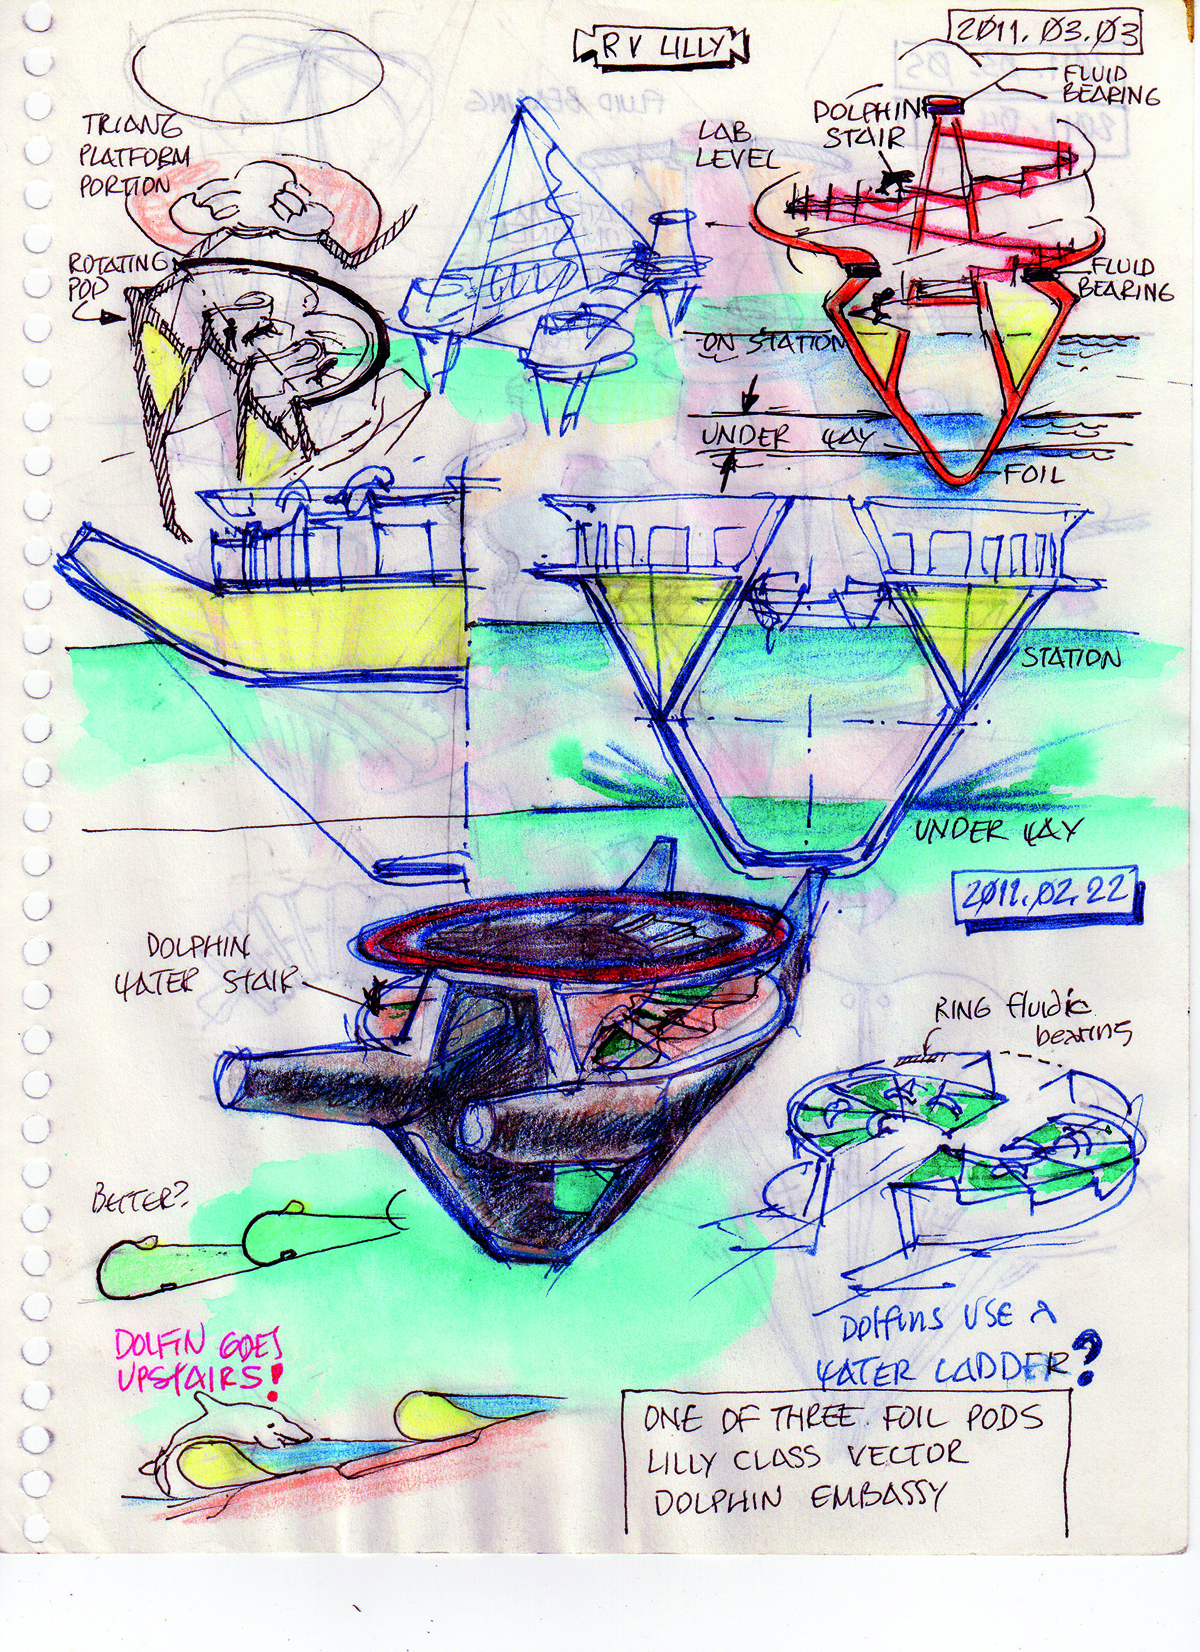 Recent Dolphin Spiral Stair sketches by Embassy designer Curtis Schreier. Curtis Schreier, RV Lilly, 2011.03.05. 2011, pen and colored pencil on paper, 8x10in. Personal sketchbook of Curtis Schreier.